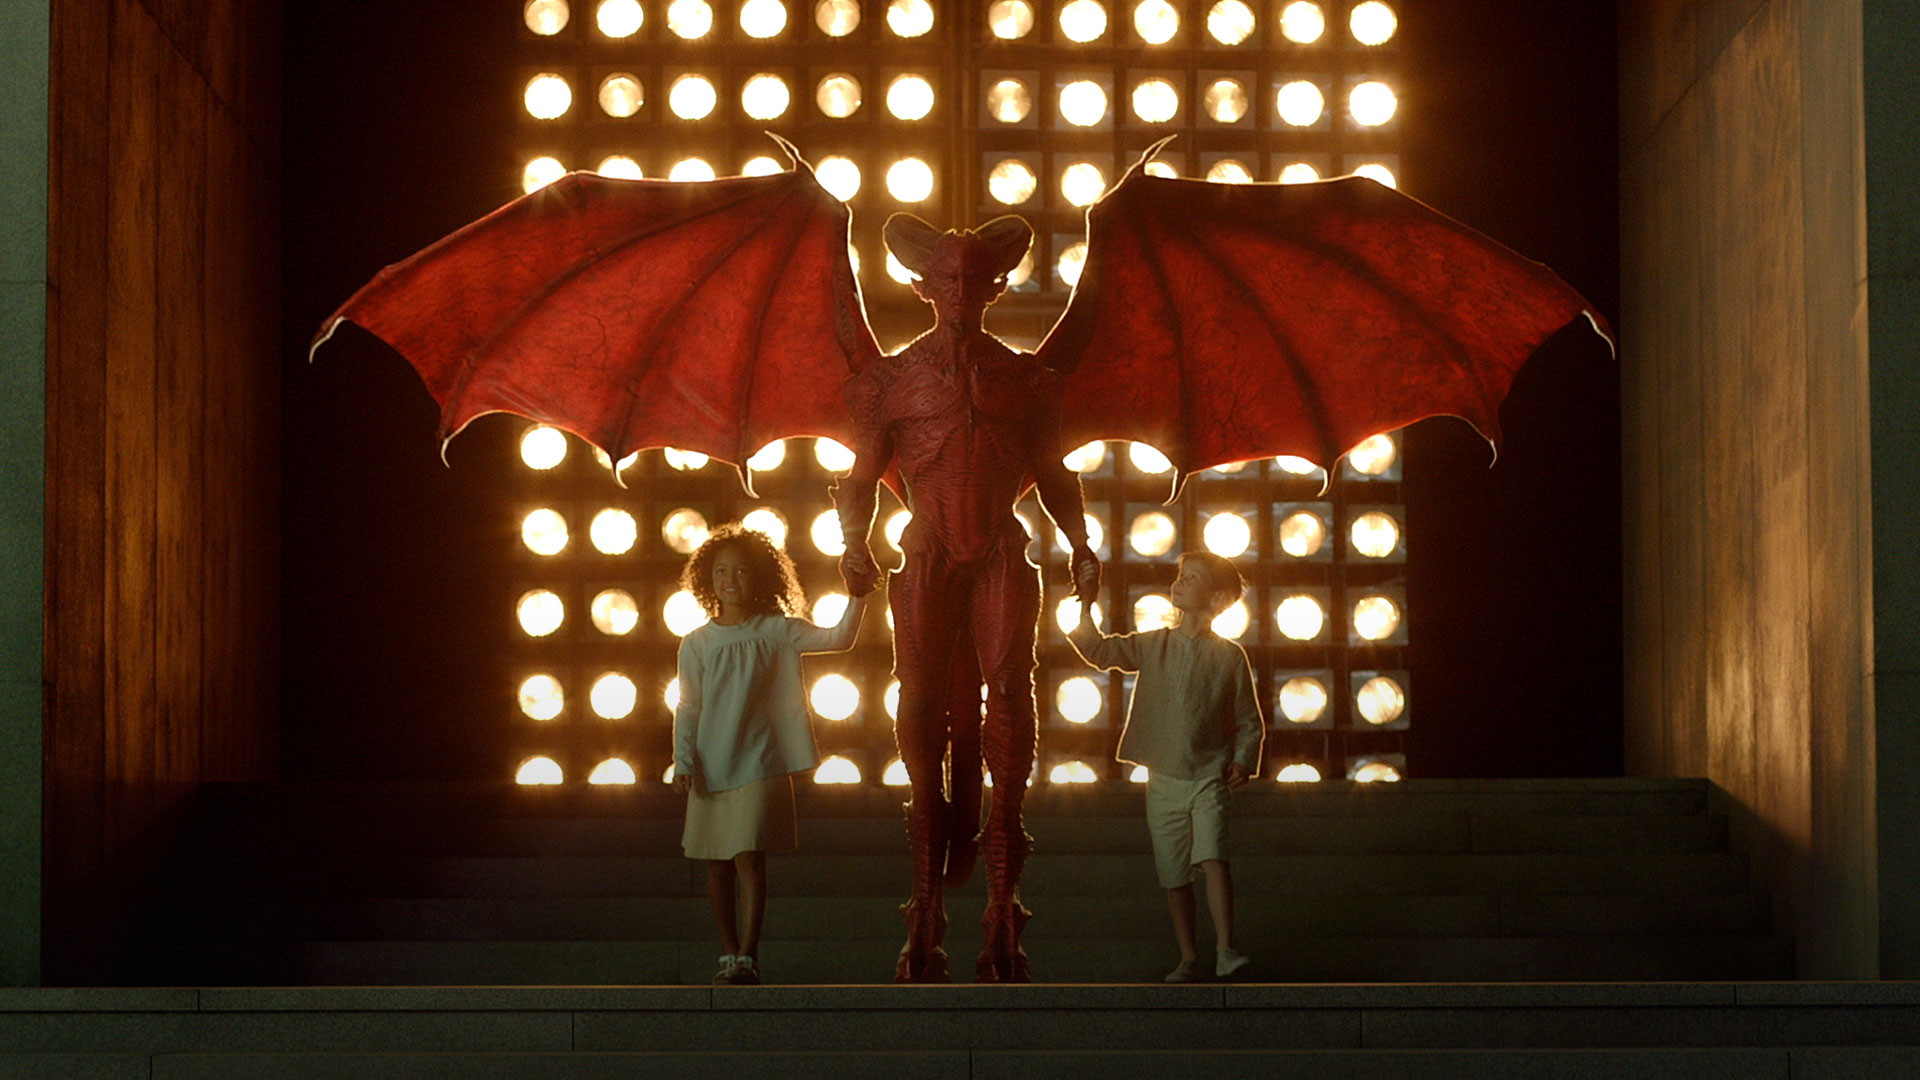 The appearance of The Overlords in Childhood's End (2015)